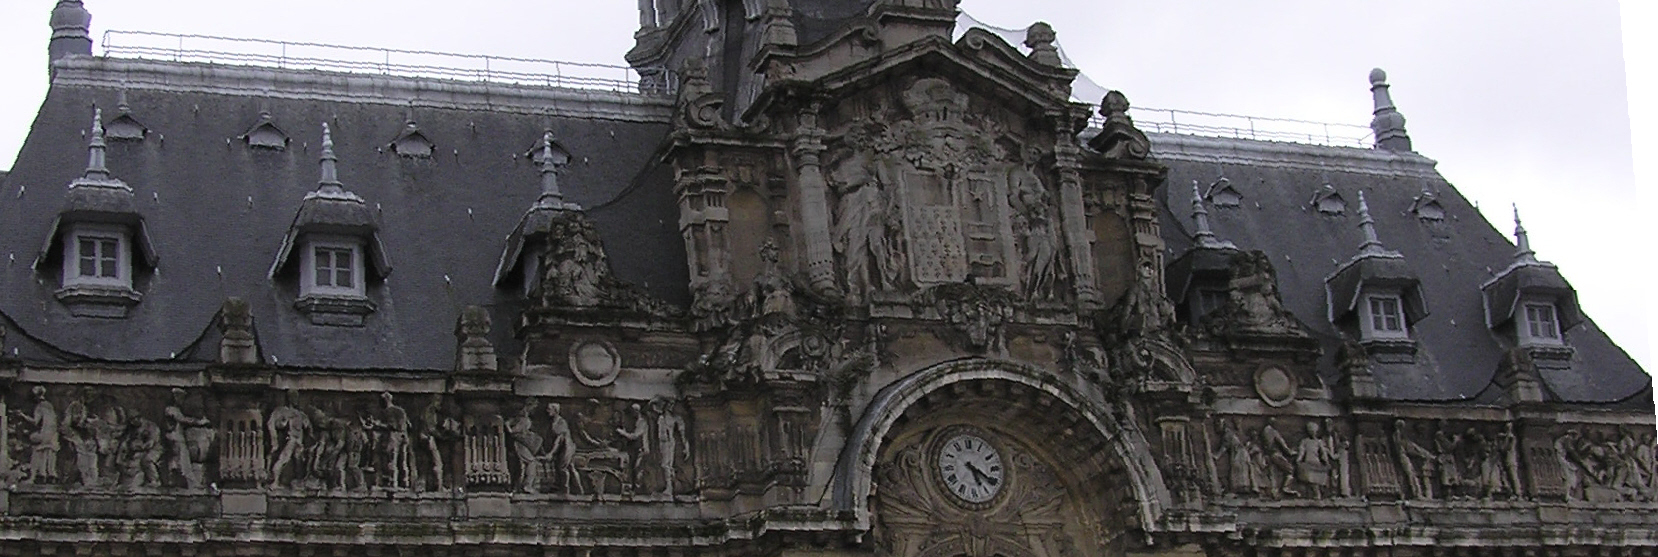 Detail of the city hall's front in Roubaix, France